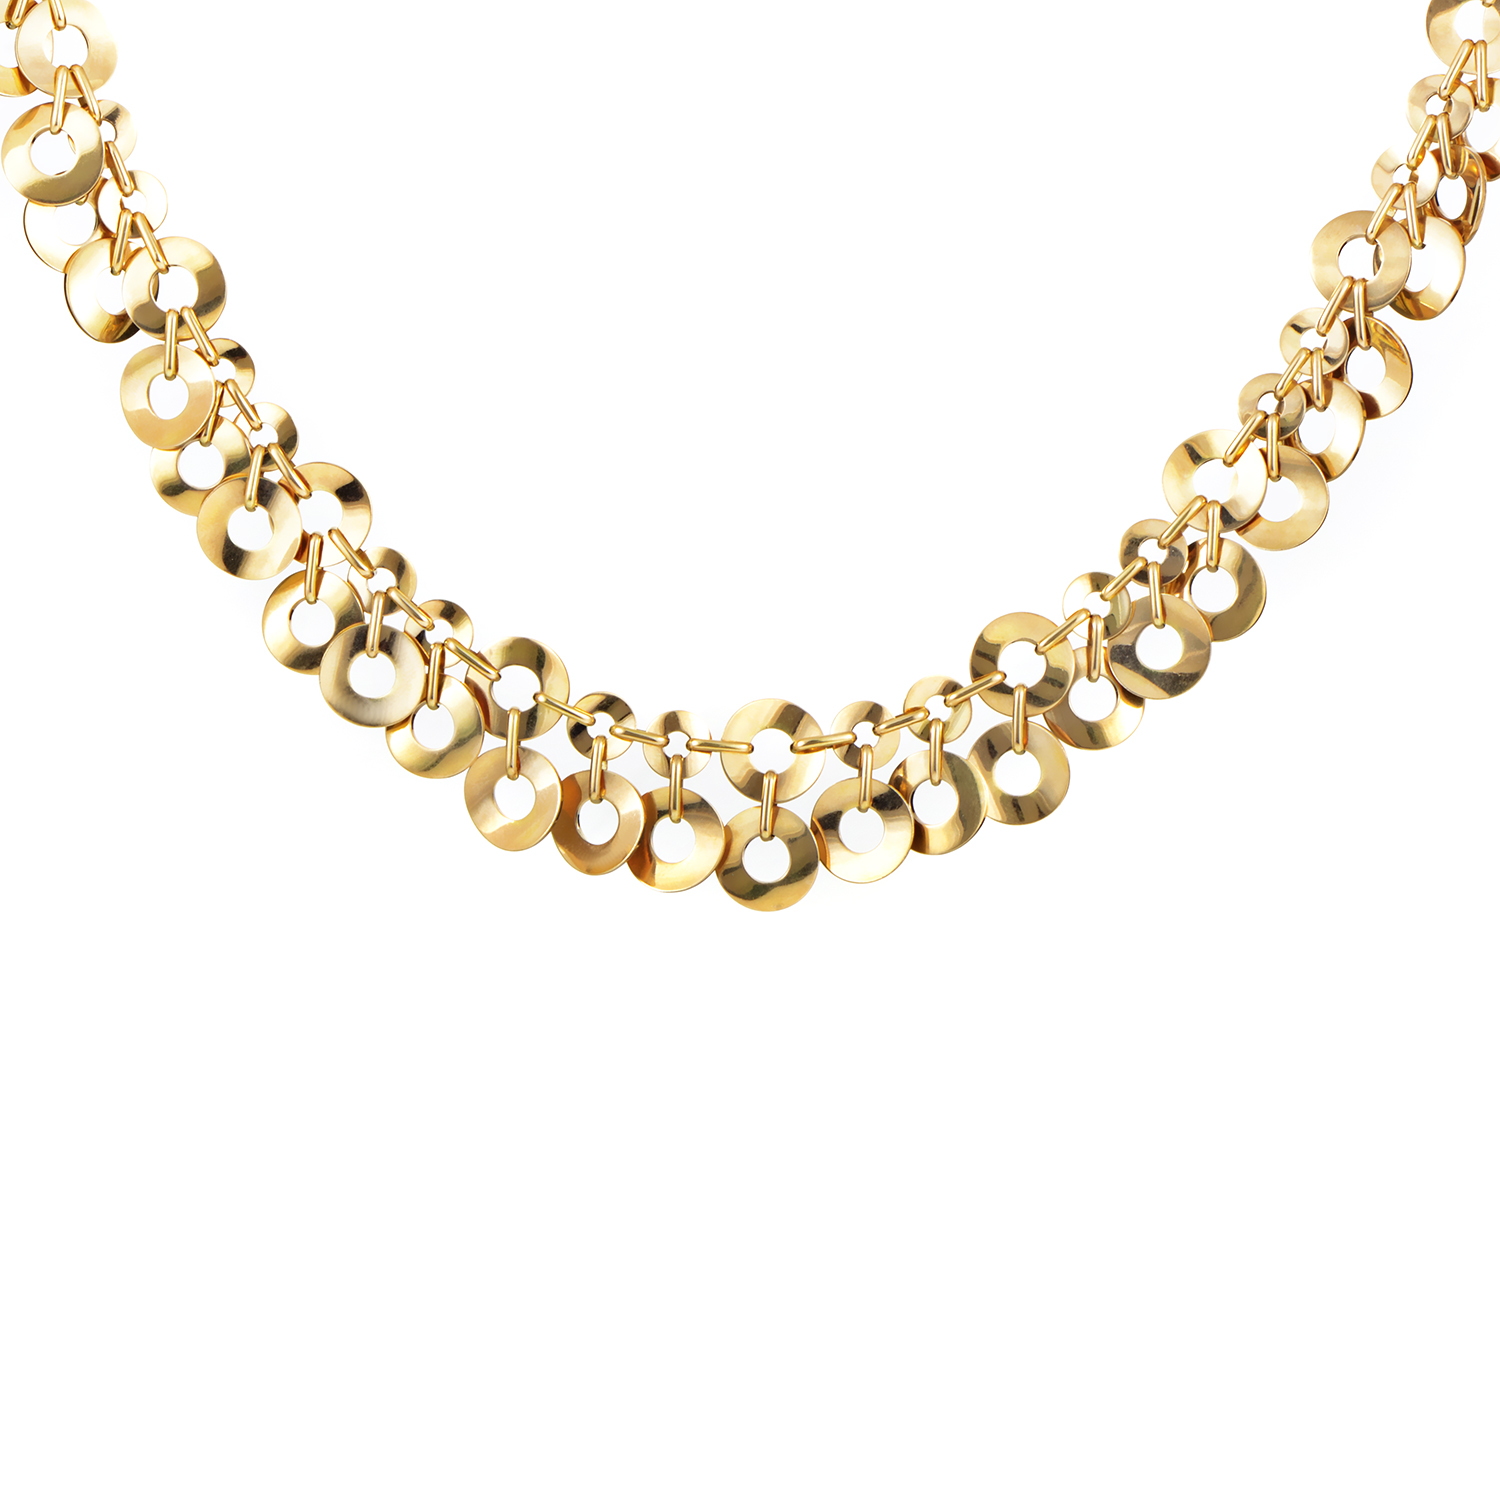 Mattioli Jewelry Women's 18K Yellow Gold Collar Toggle Necklace